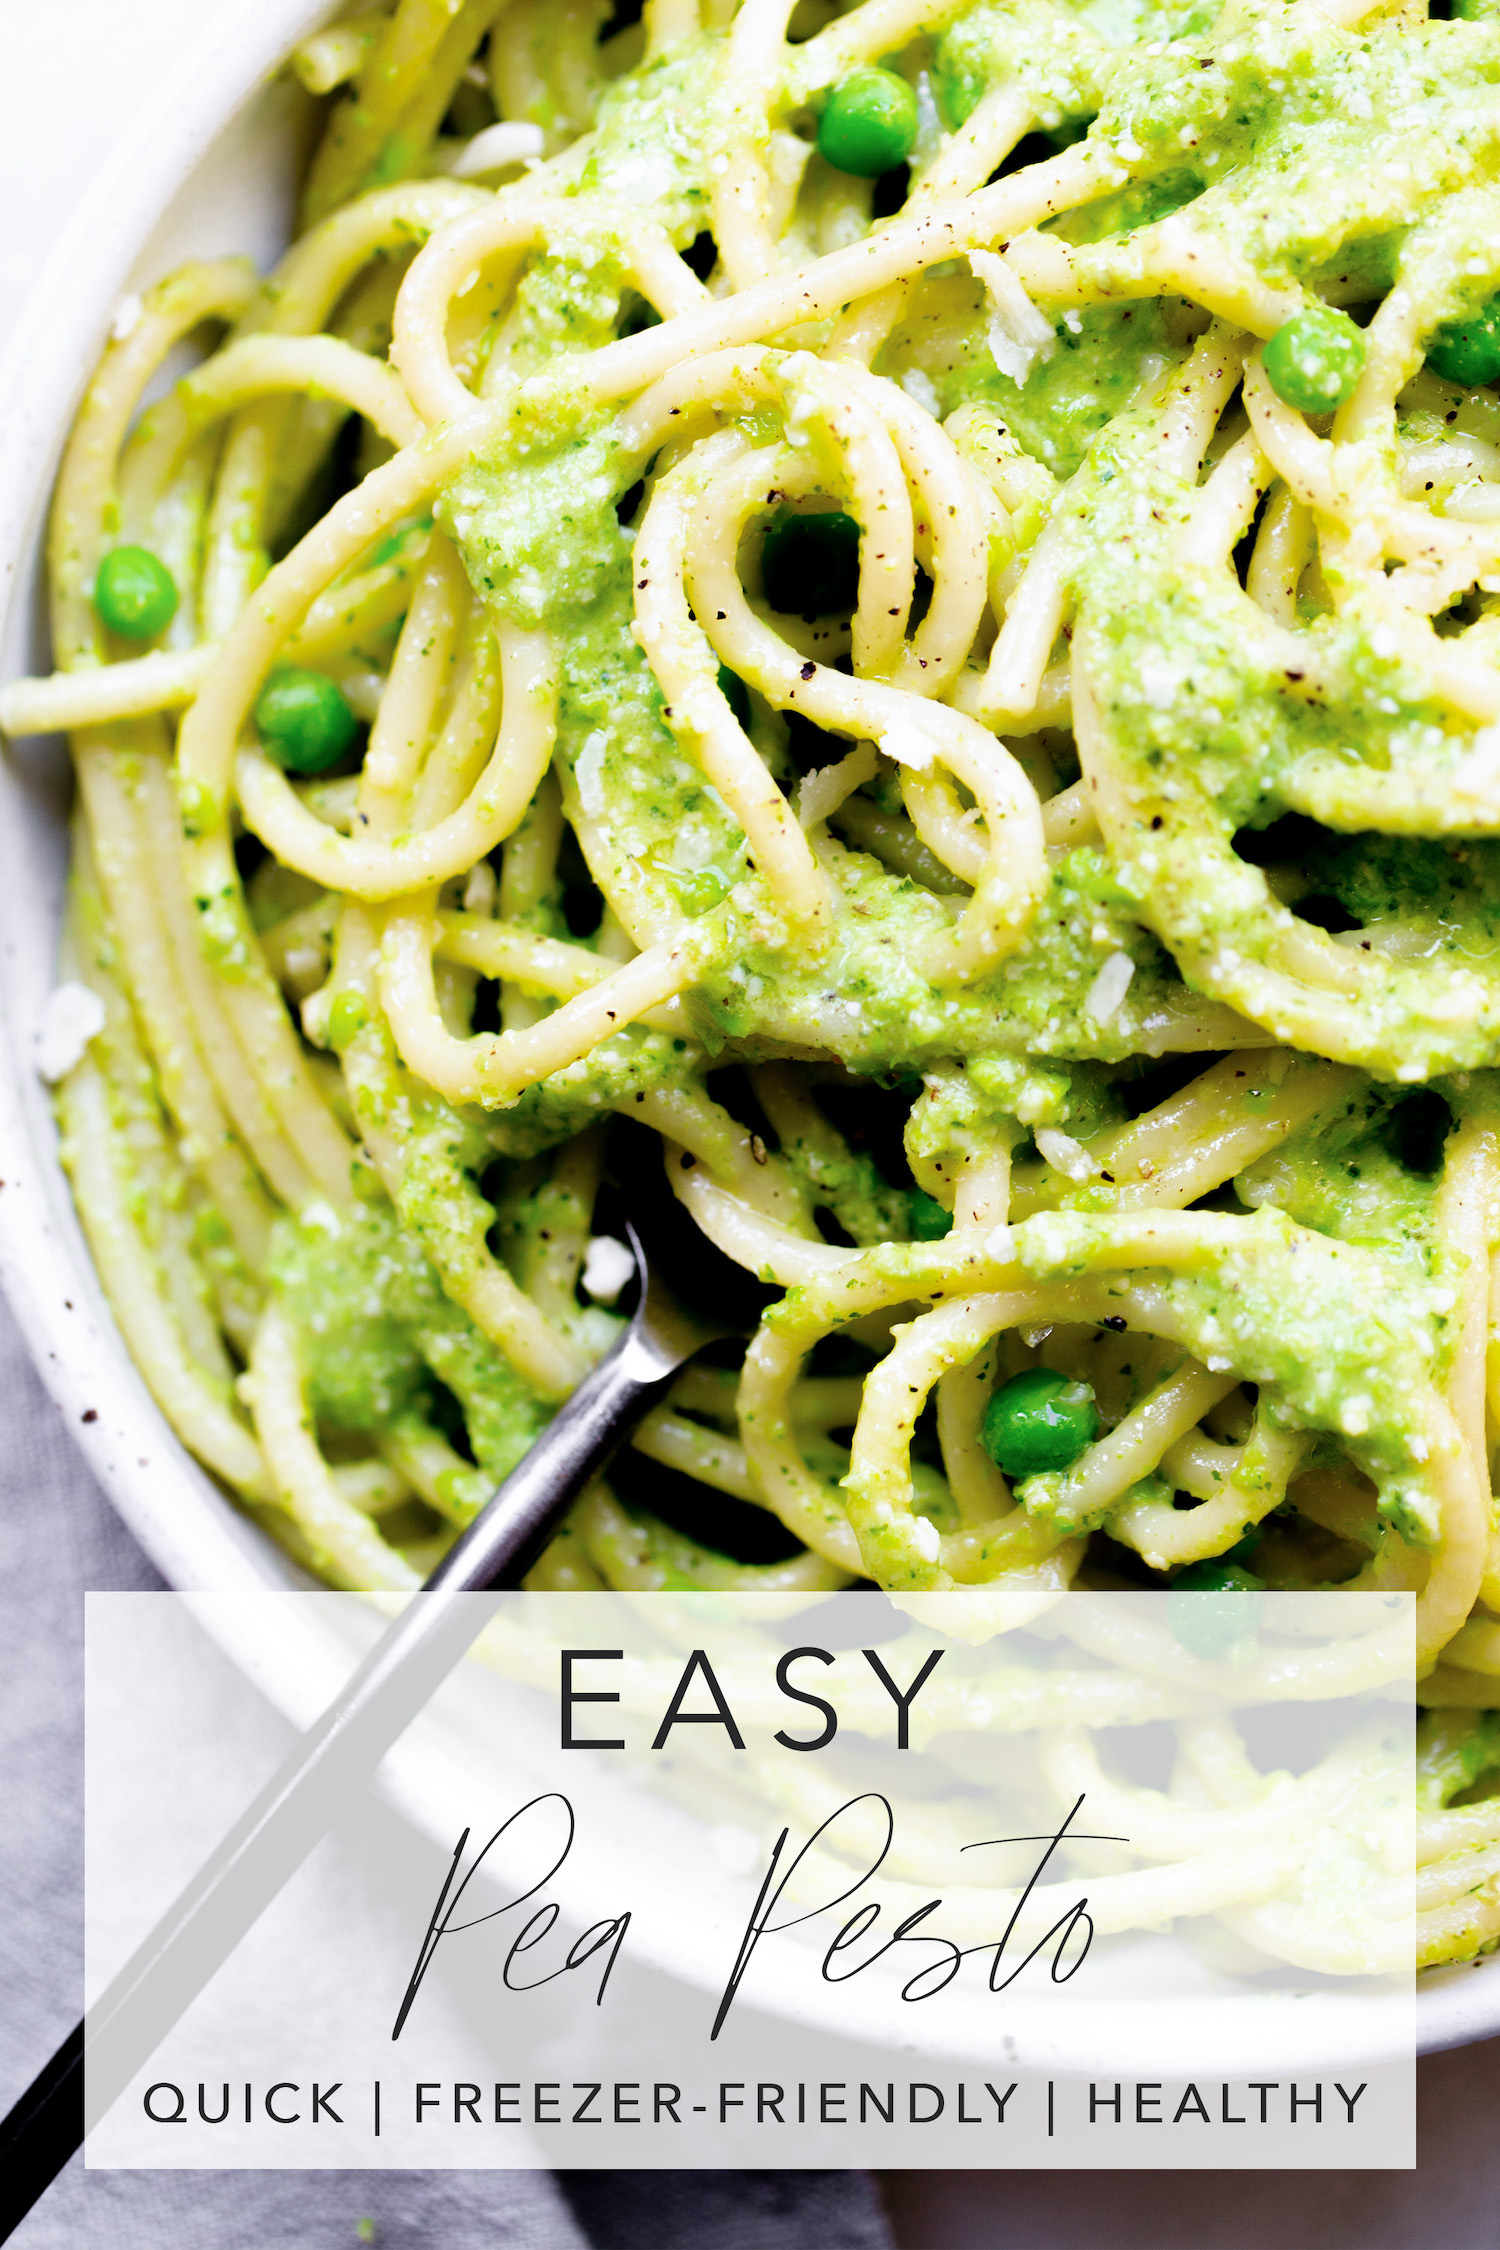 closeup of spaghetti pasta coated in pea pesto with title text overlay